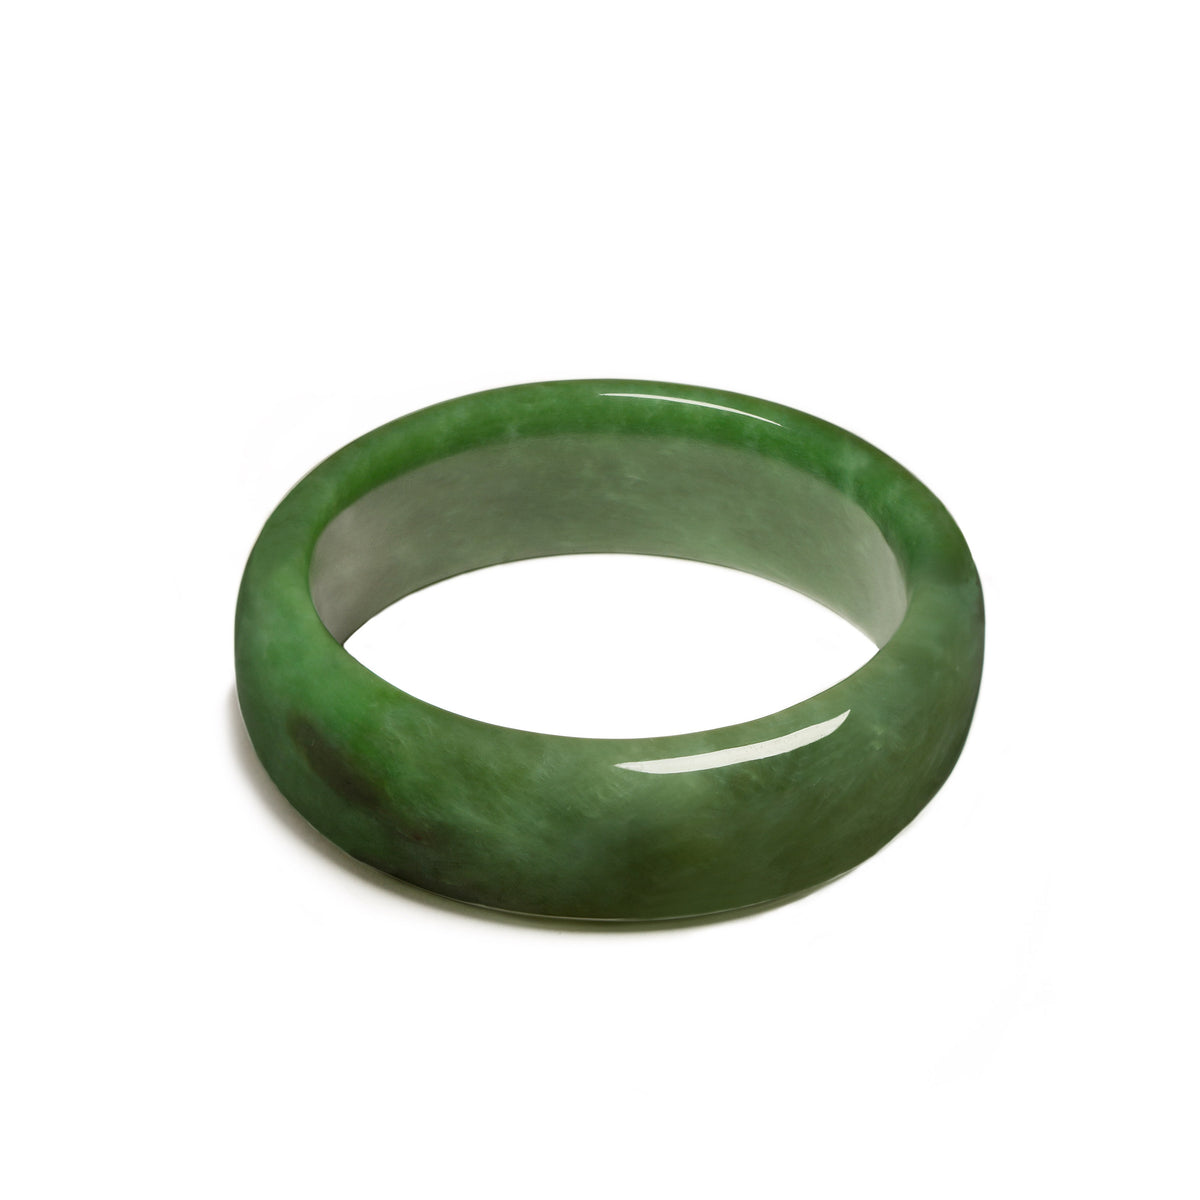 57mm Internal Diameter x 74mm External Diameter / Russian Jade